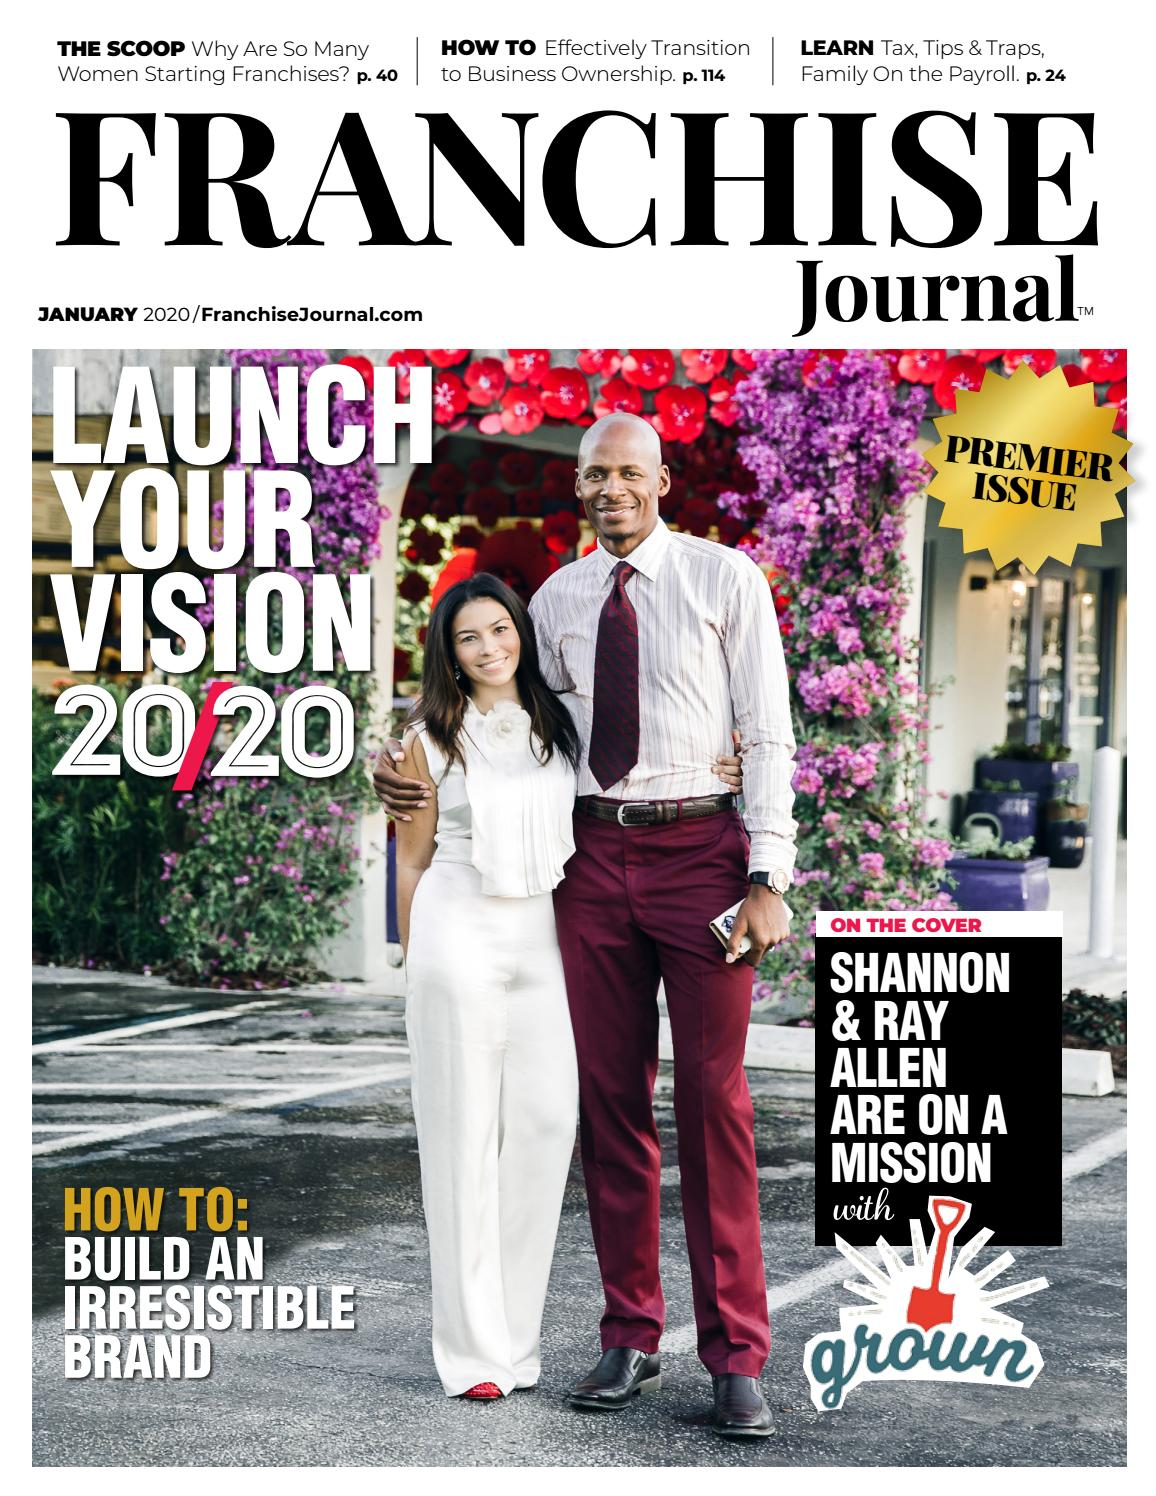 Franchise Journal by Franchise Journal   issuu